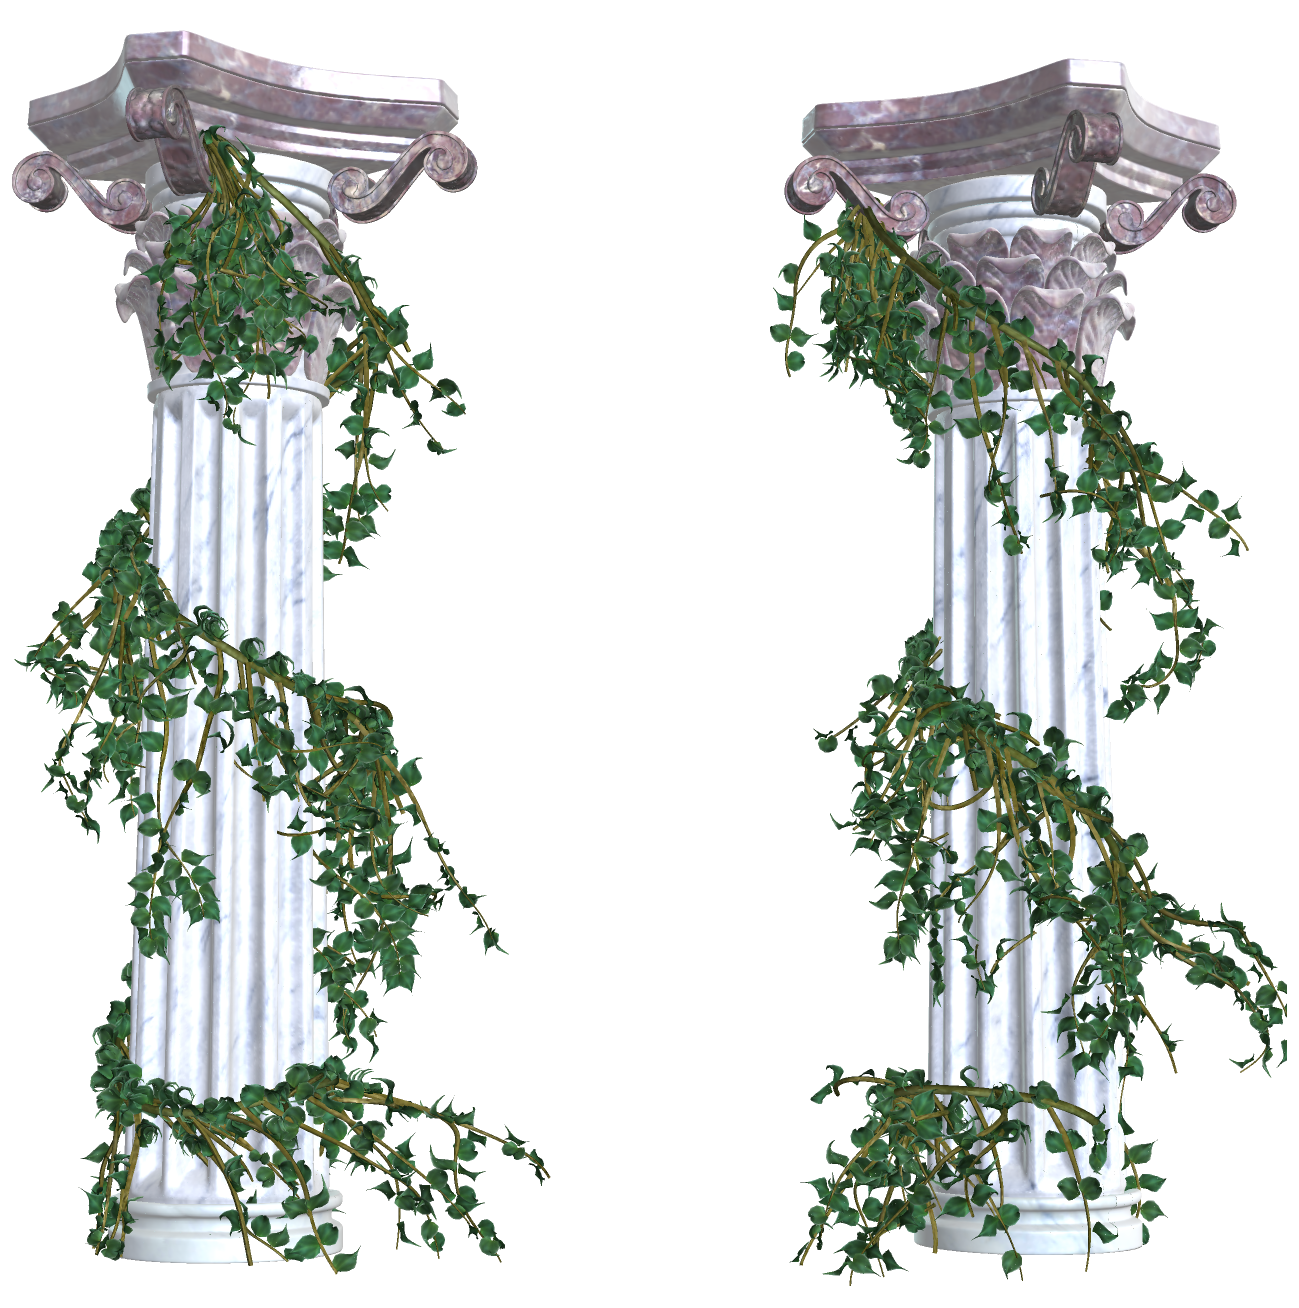 Vines png. Beautiful columns with decorative